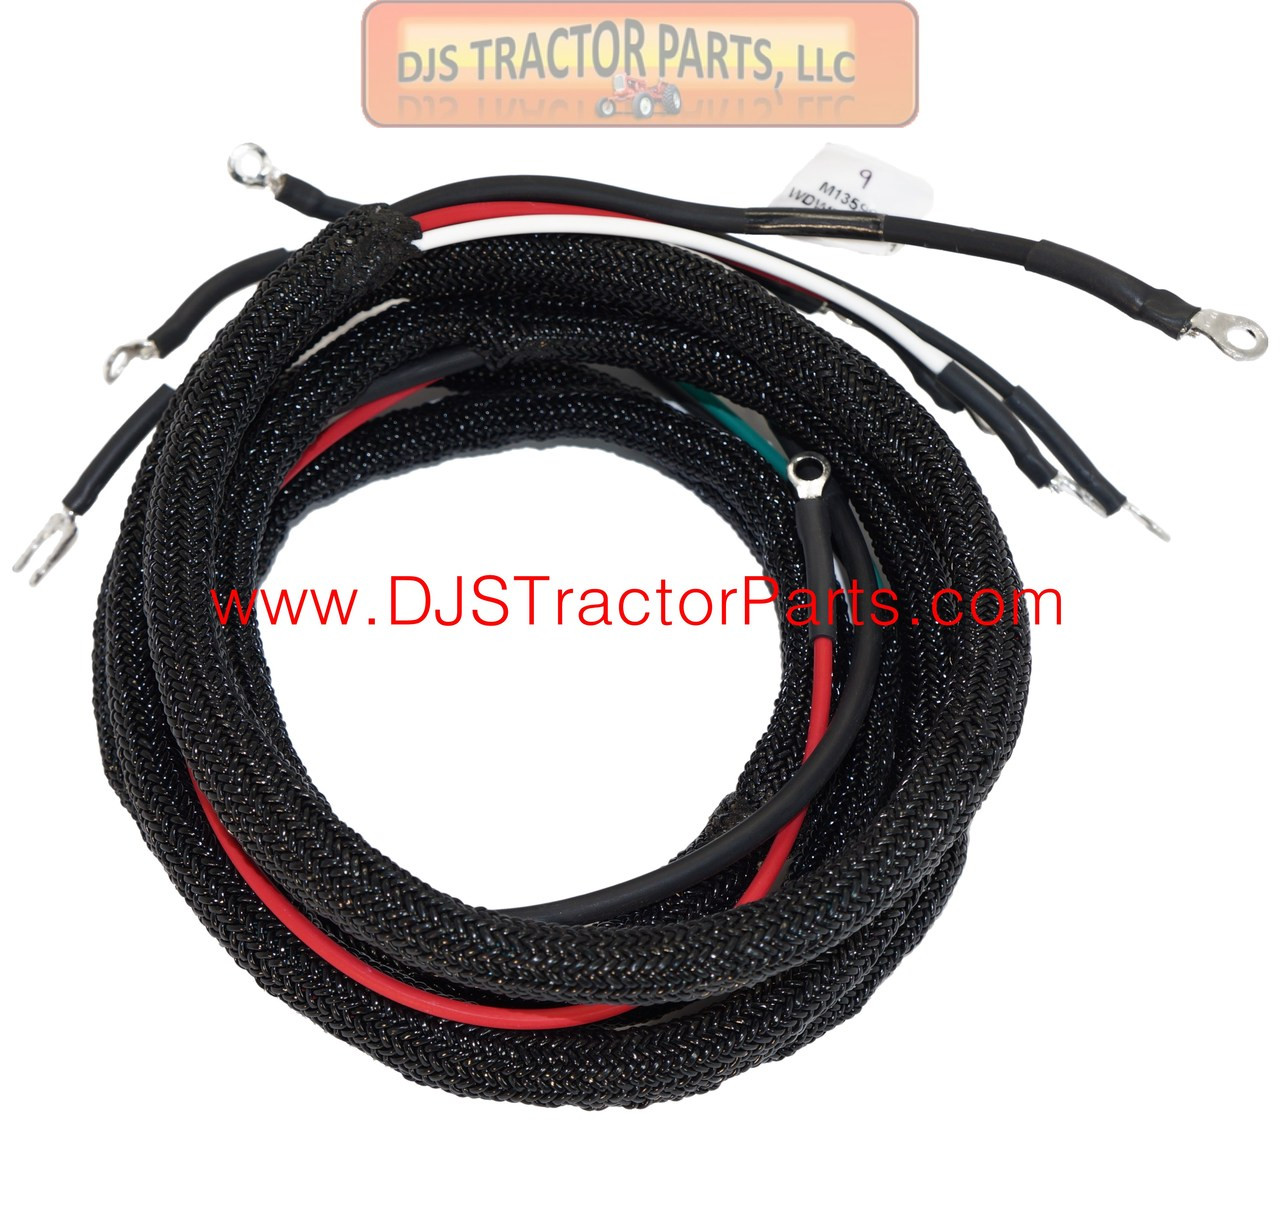 small resolution of main wiring harness allis chalmers wd wd45 acr4766 djs tractor parts llc